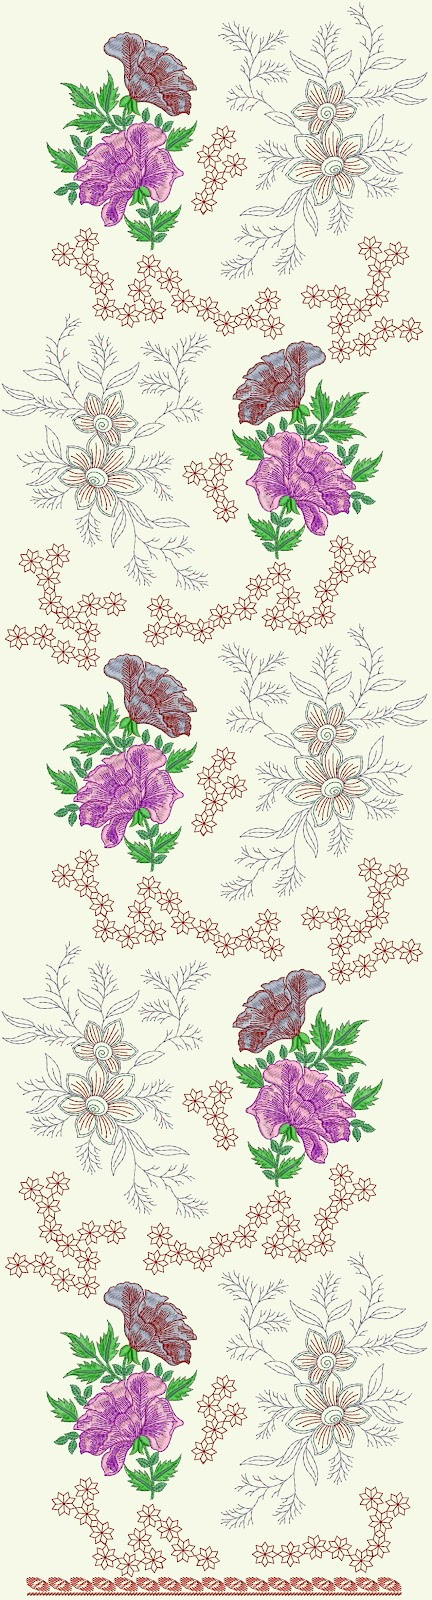 Embdesigntube Dress Embroidery Designs With Eyelet Stitch